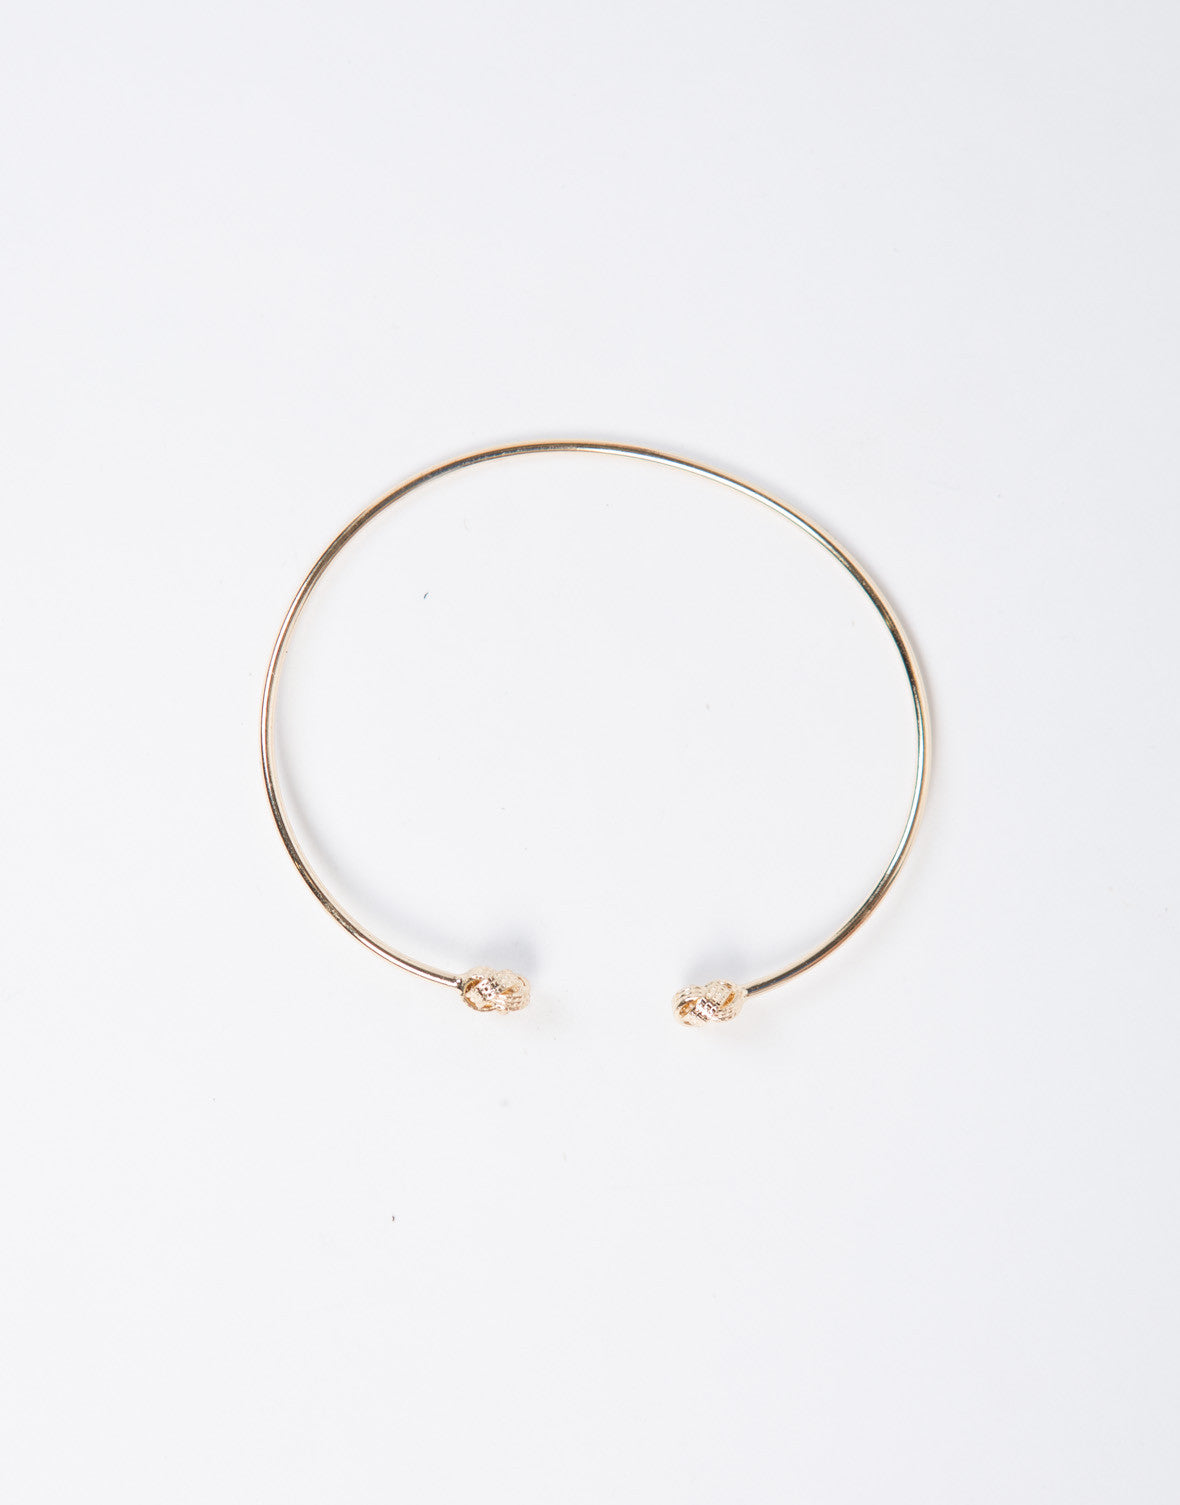 Knotted Thin Cuff